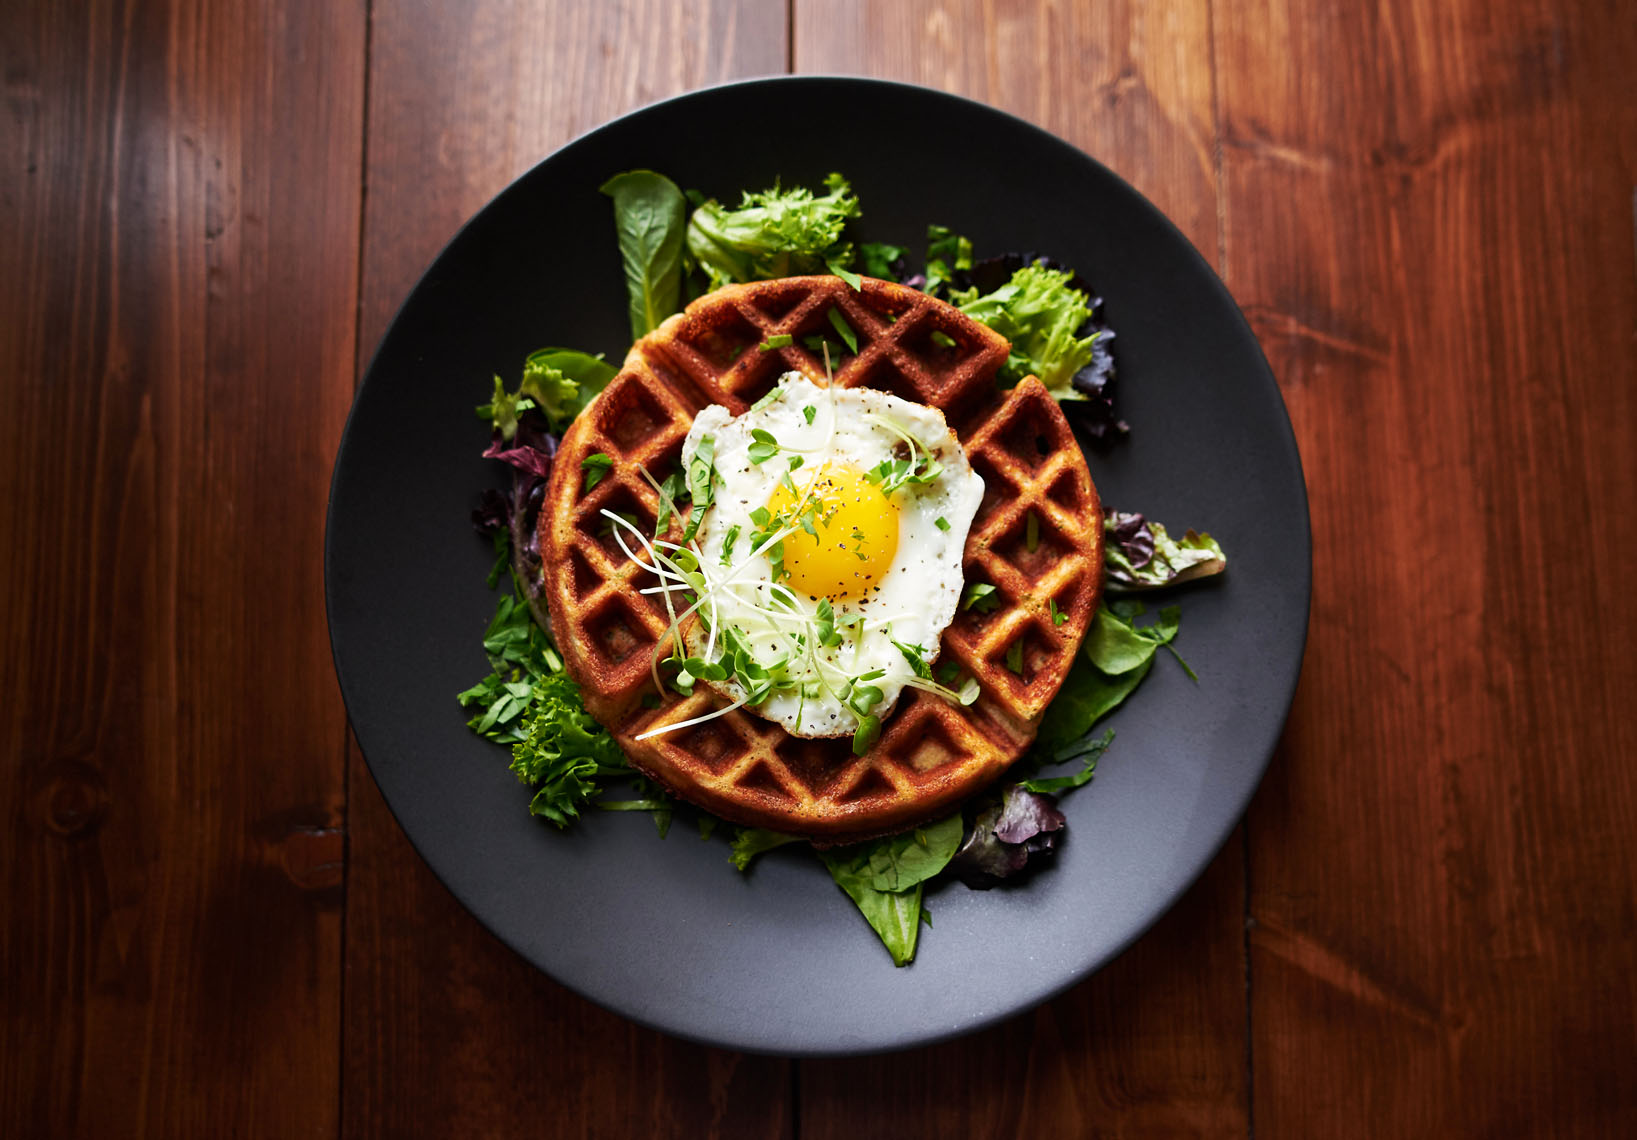 fried egg on waffle breakfast food photography